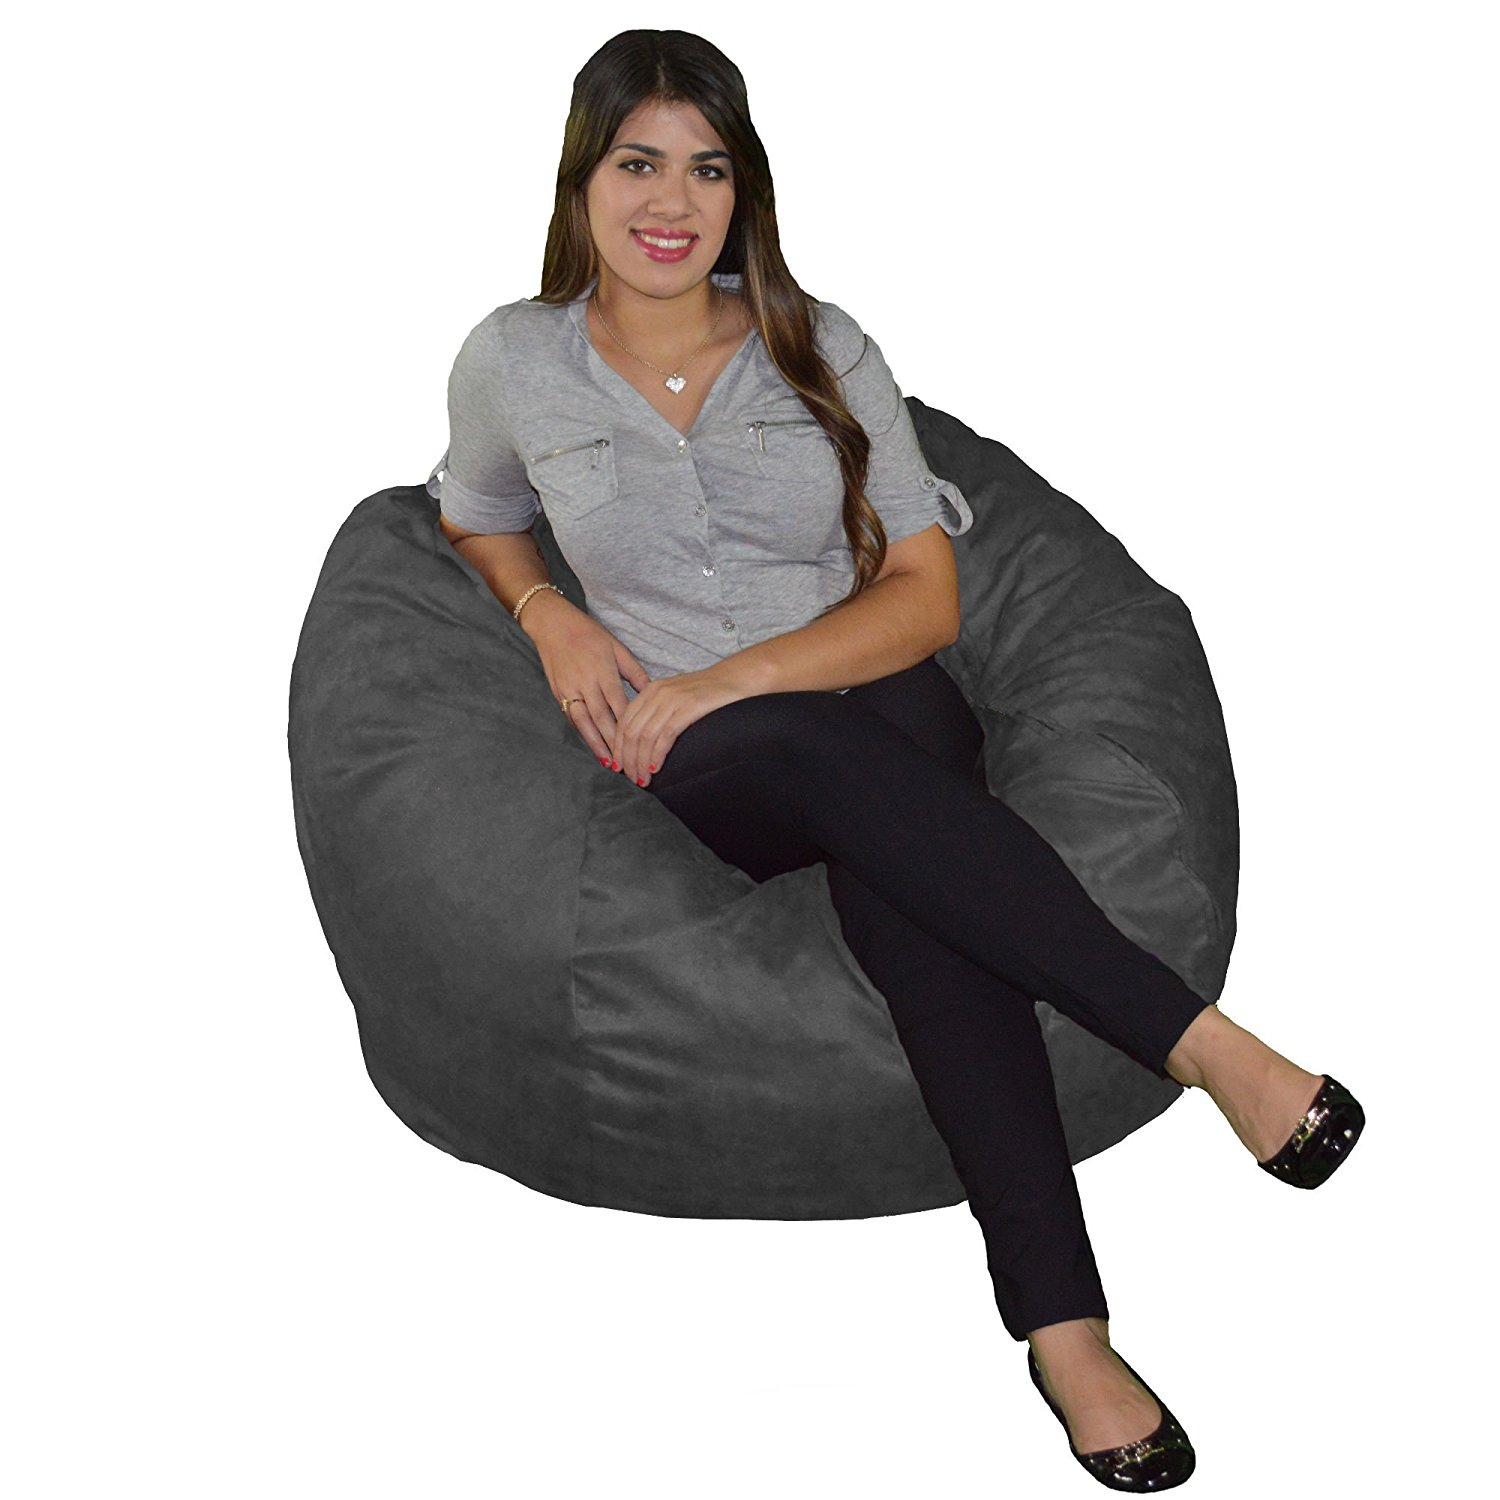 Cozy Sack Bean Bag Chair With Machine Wash Microfiber Cover